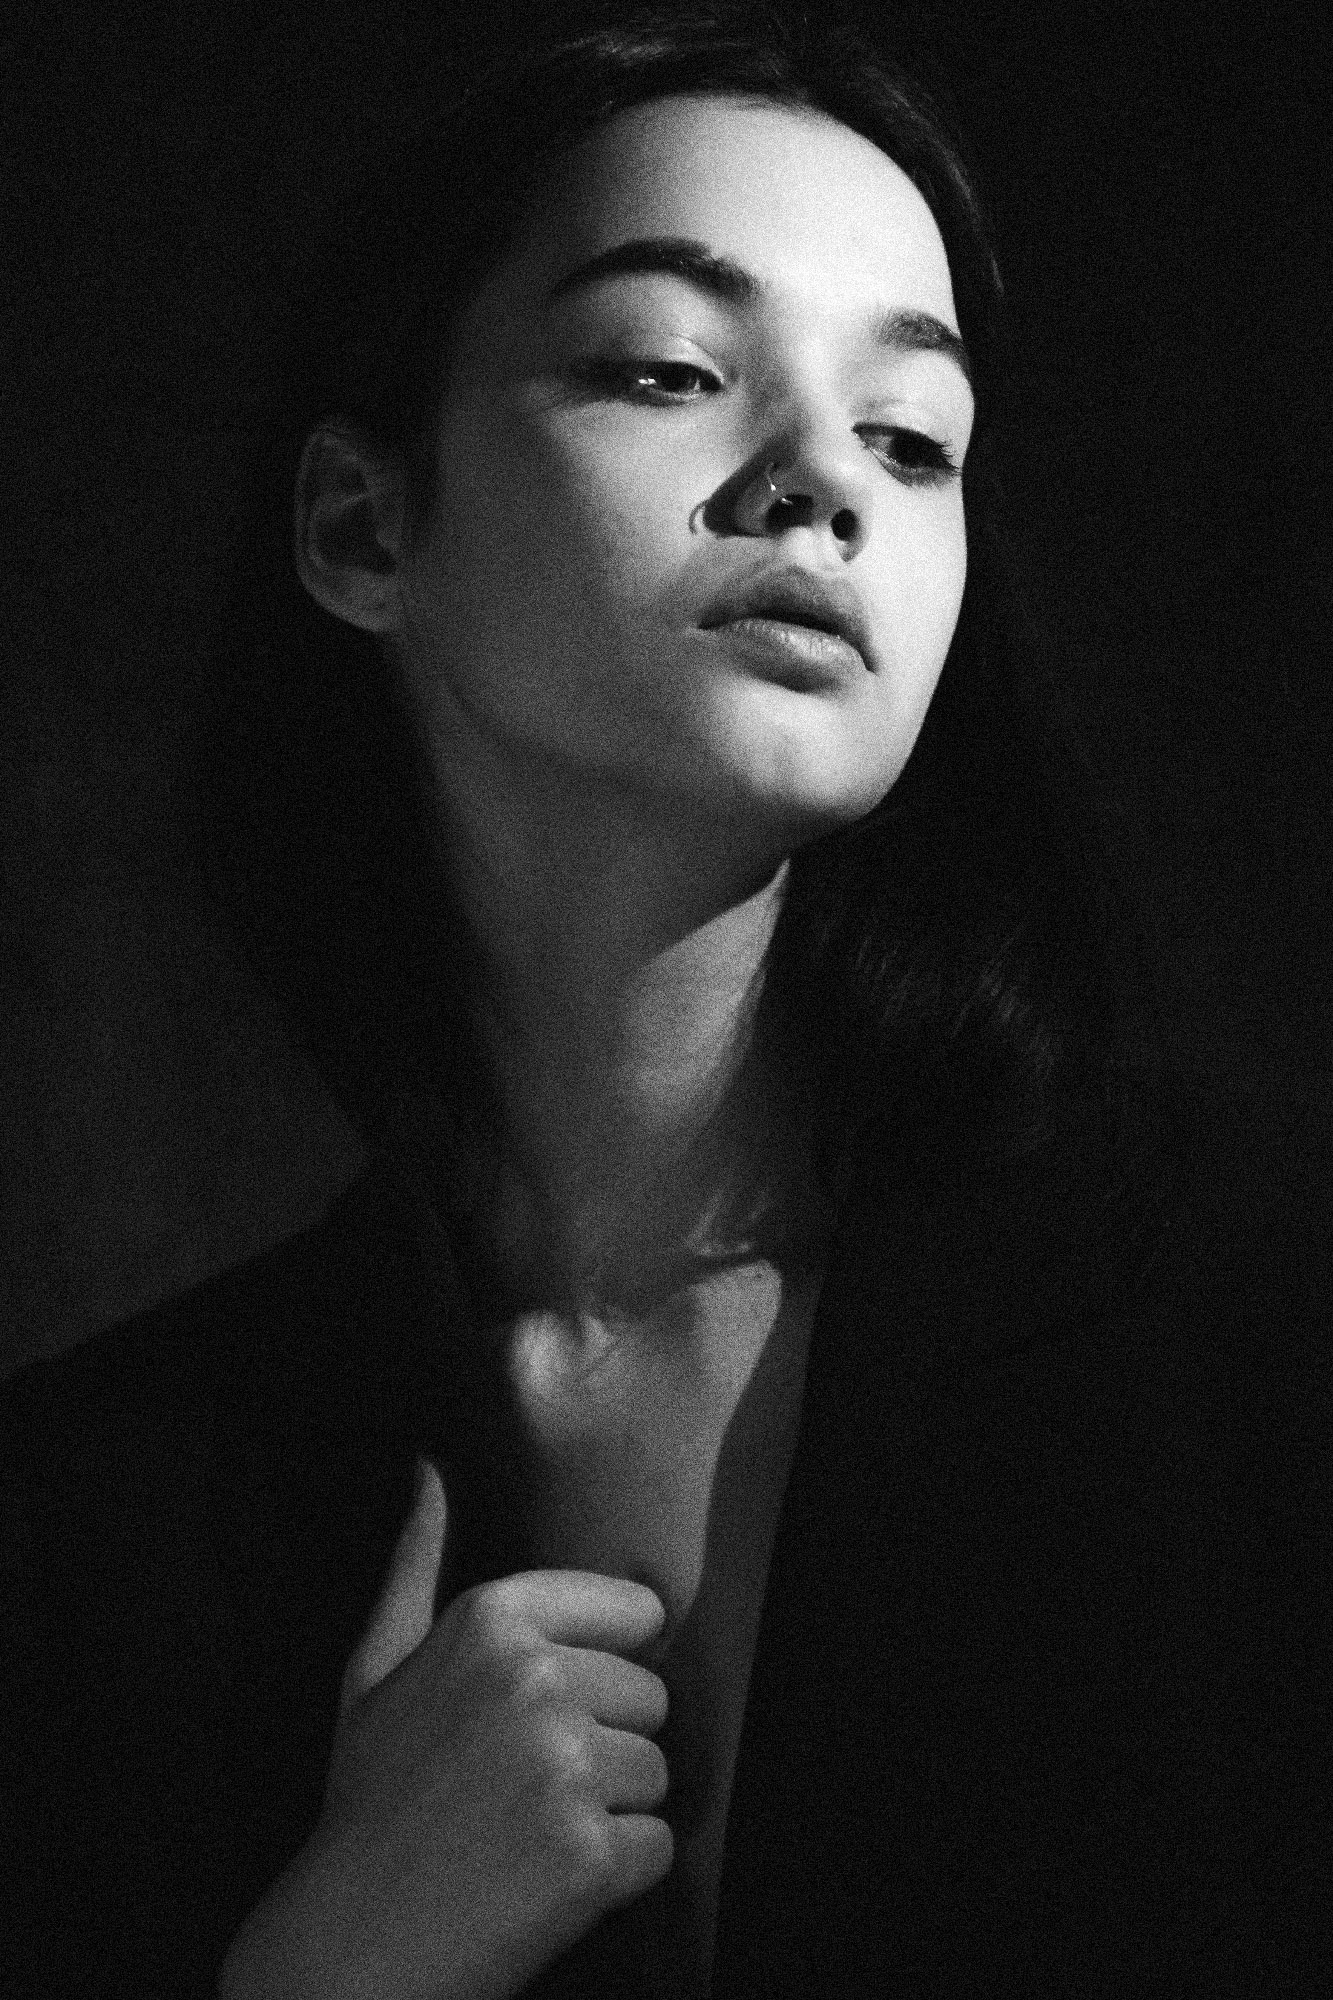 Dasha Ilyuschits by Arnaud Ele